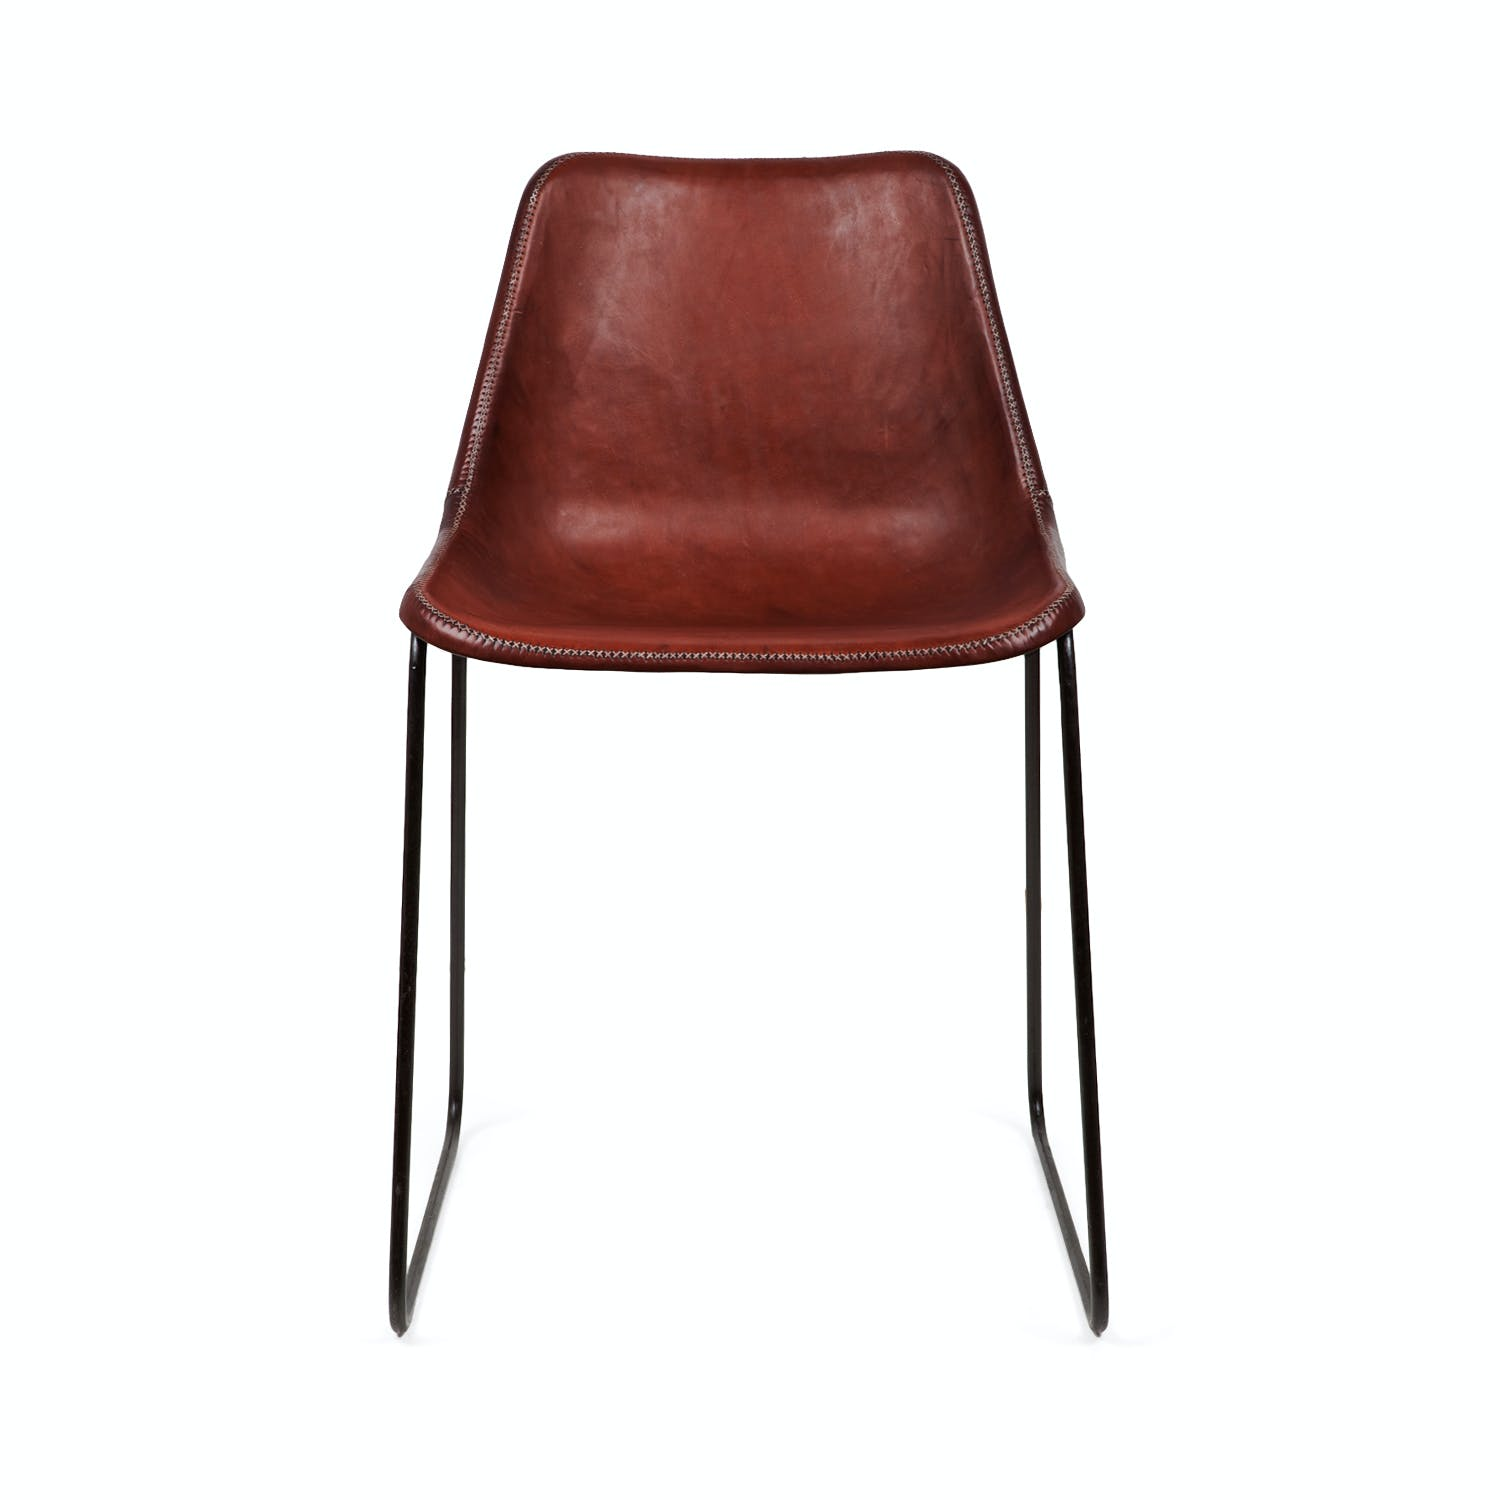 Product Image - Giron Leather Chair Brown